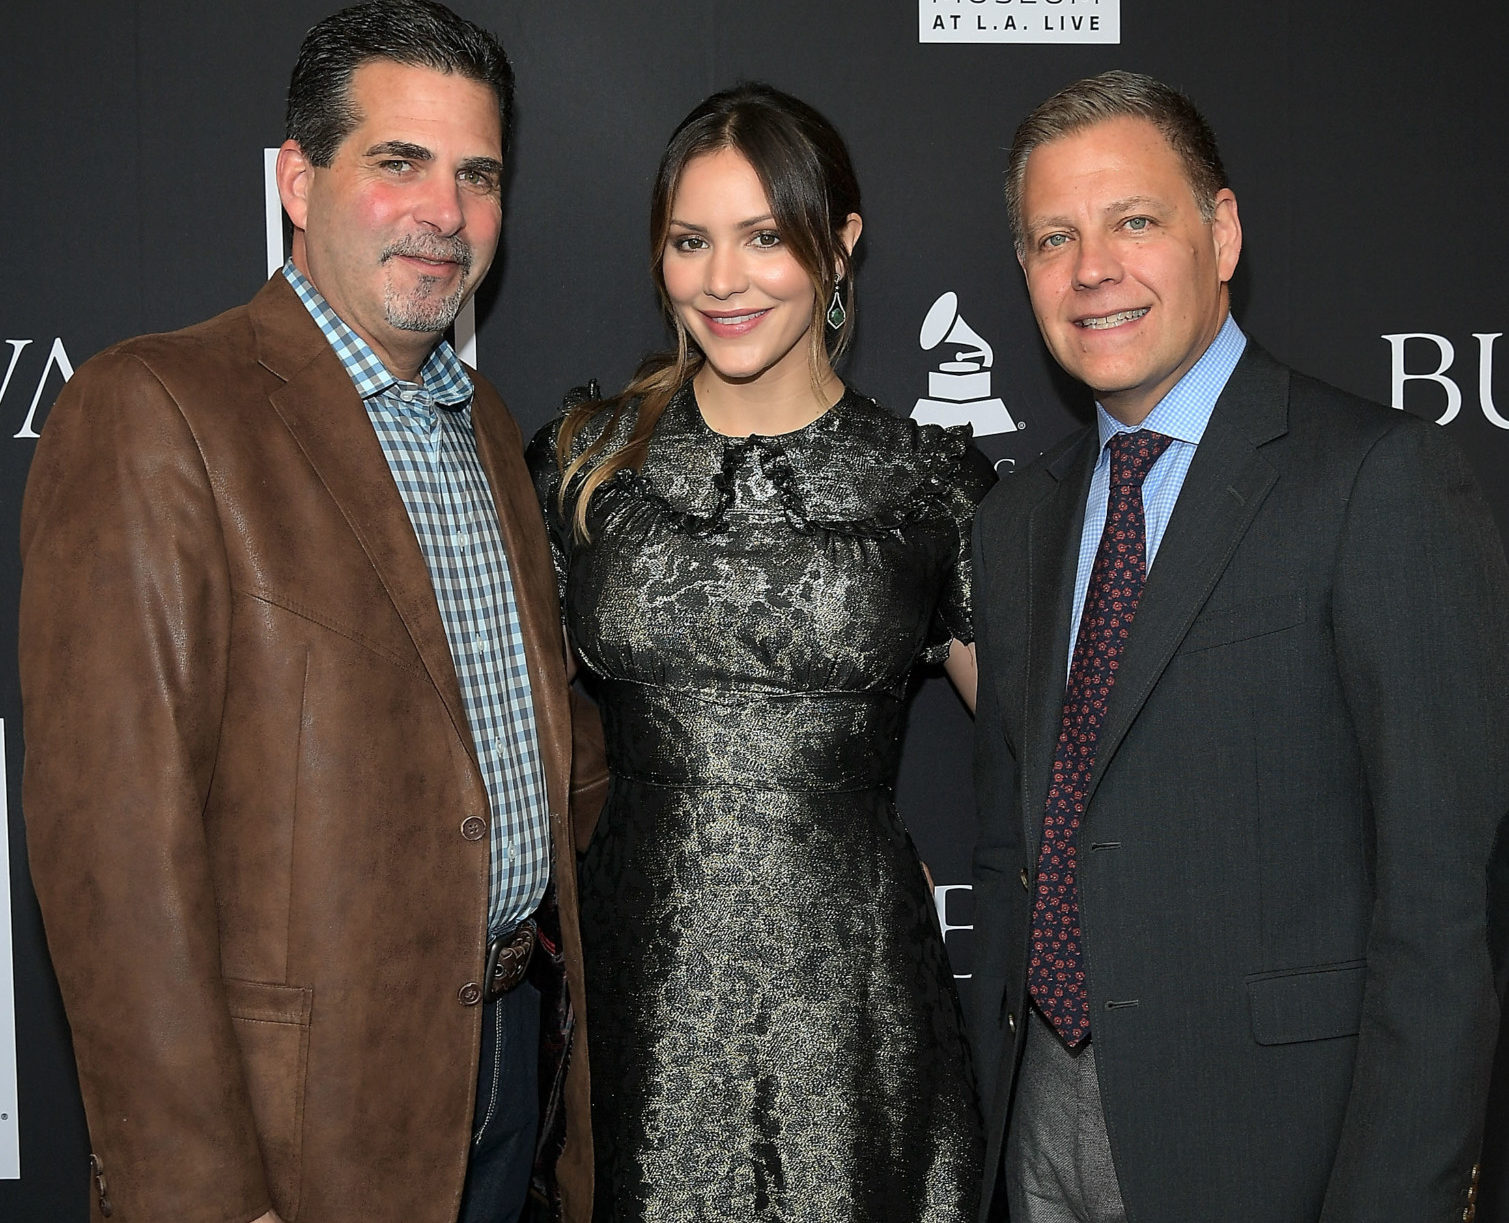 President of Citizen Watch America, Bulova Jeffrey Cohen, Katharine McPhee and Managing Director Bulova U.S. Michael Benavente attend the Bulova x GRAMMY Brunch in the Clive Davis Theater at The GRAMMY Museum on February 11, 2017 in Los Angeles, California.  (Photo by Charley Gallay/WireImage)